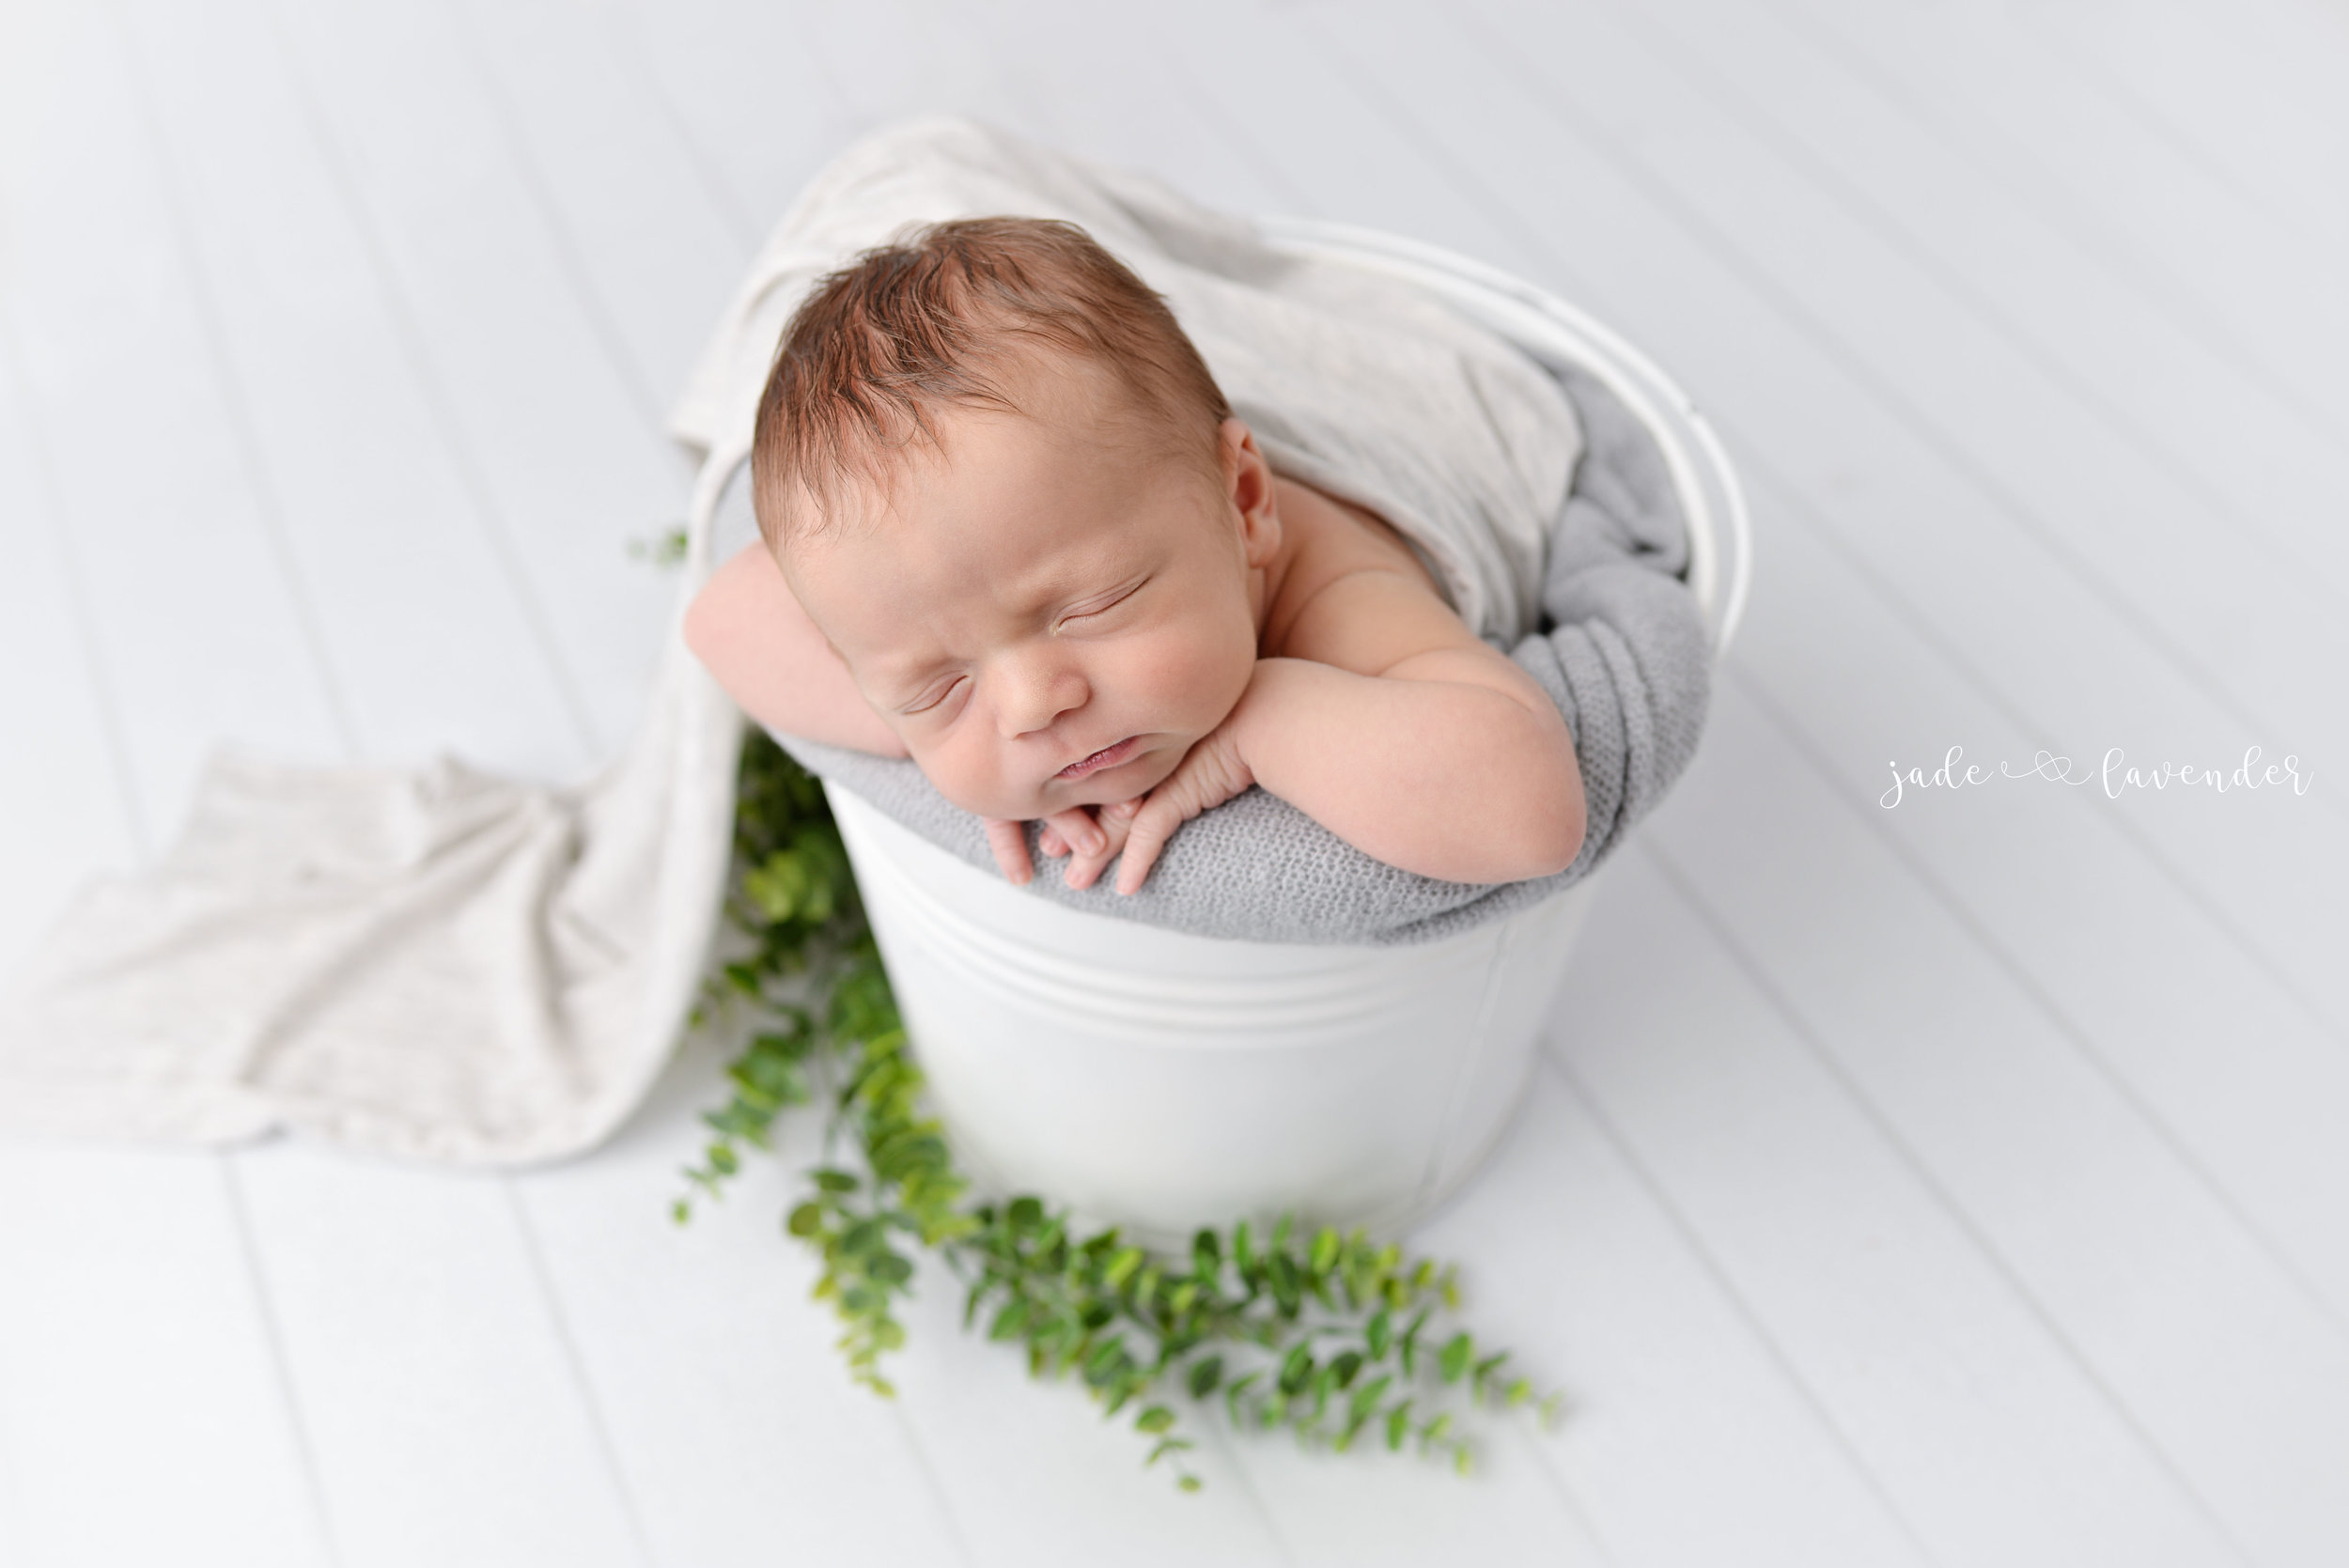 Newborn-boy-photos-baby-photography-infant-images-spokane-washington (2 of 9).jpg